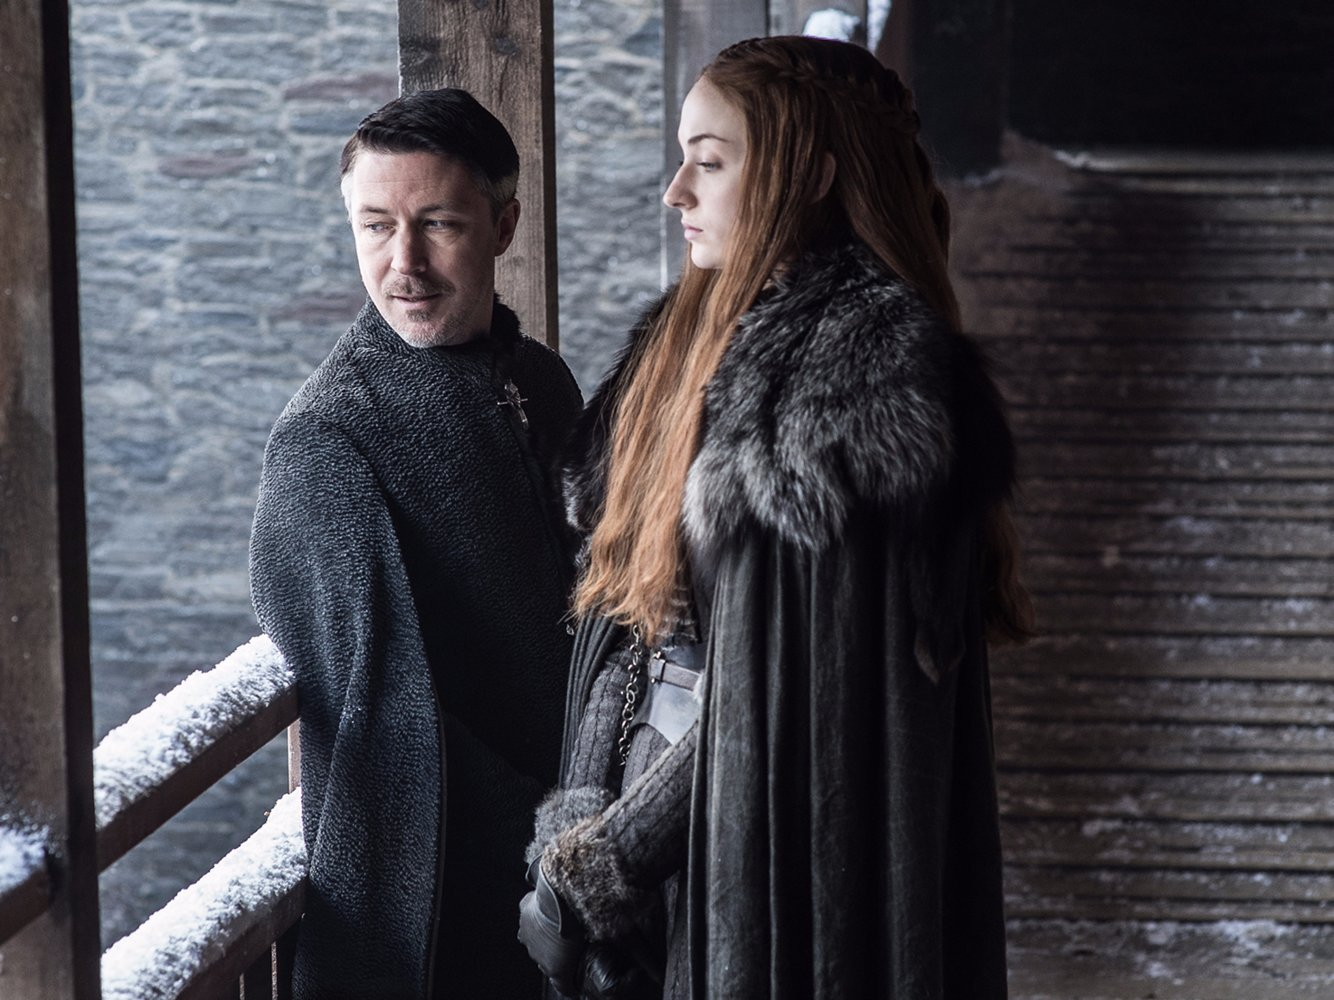 This is the dark meaning behind Sansa's outfits in new Game of Thrones